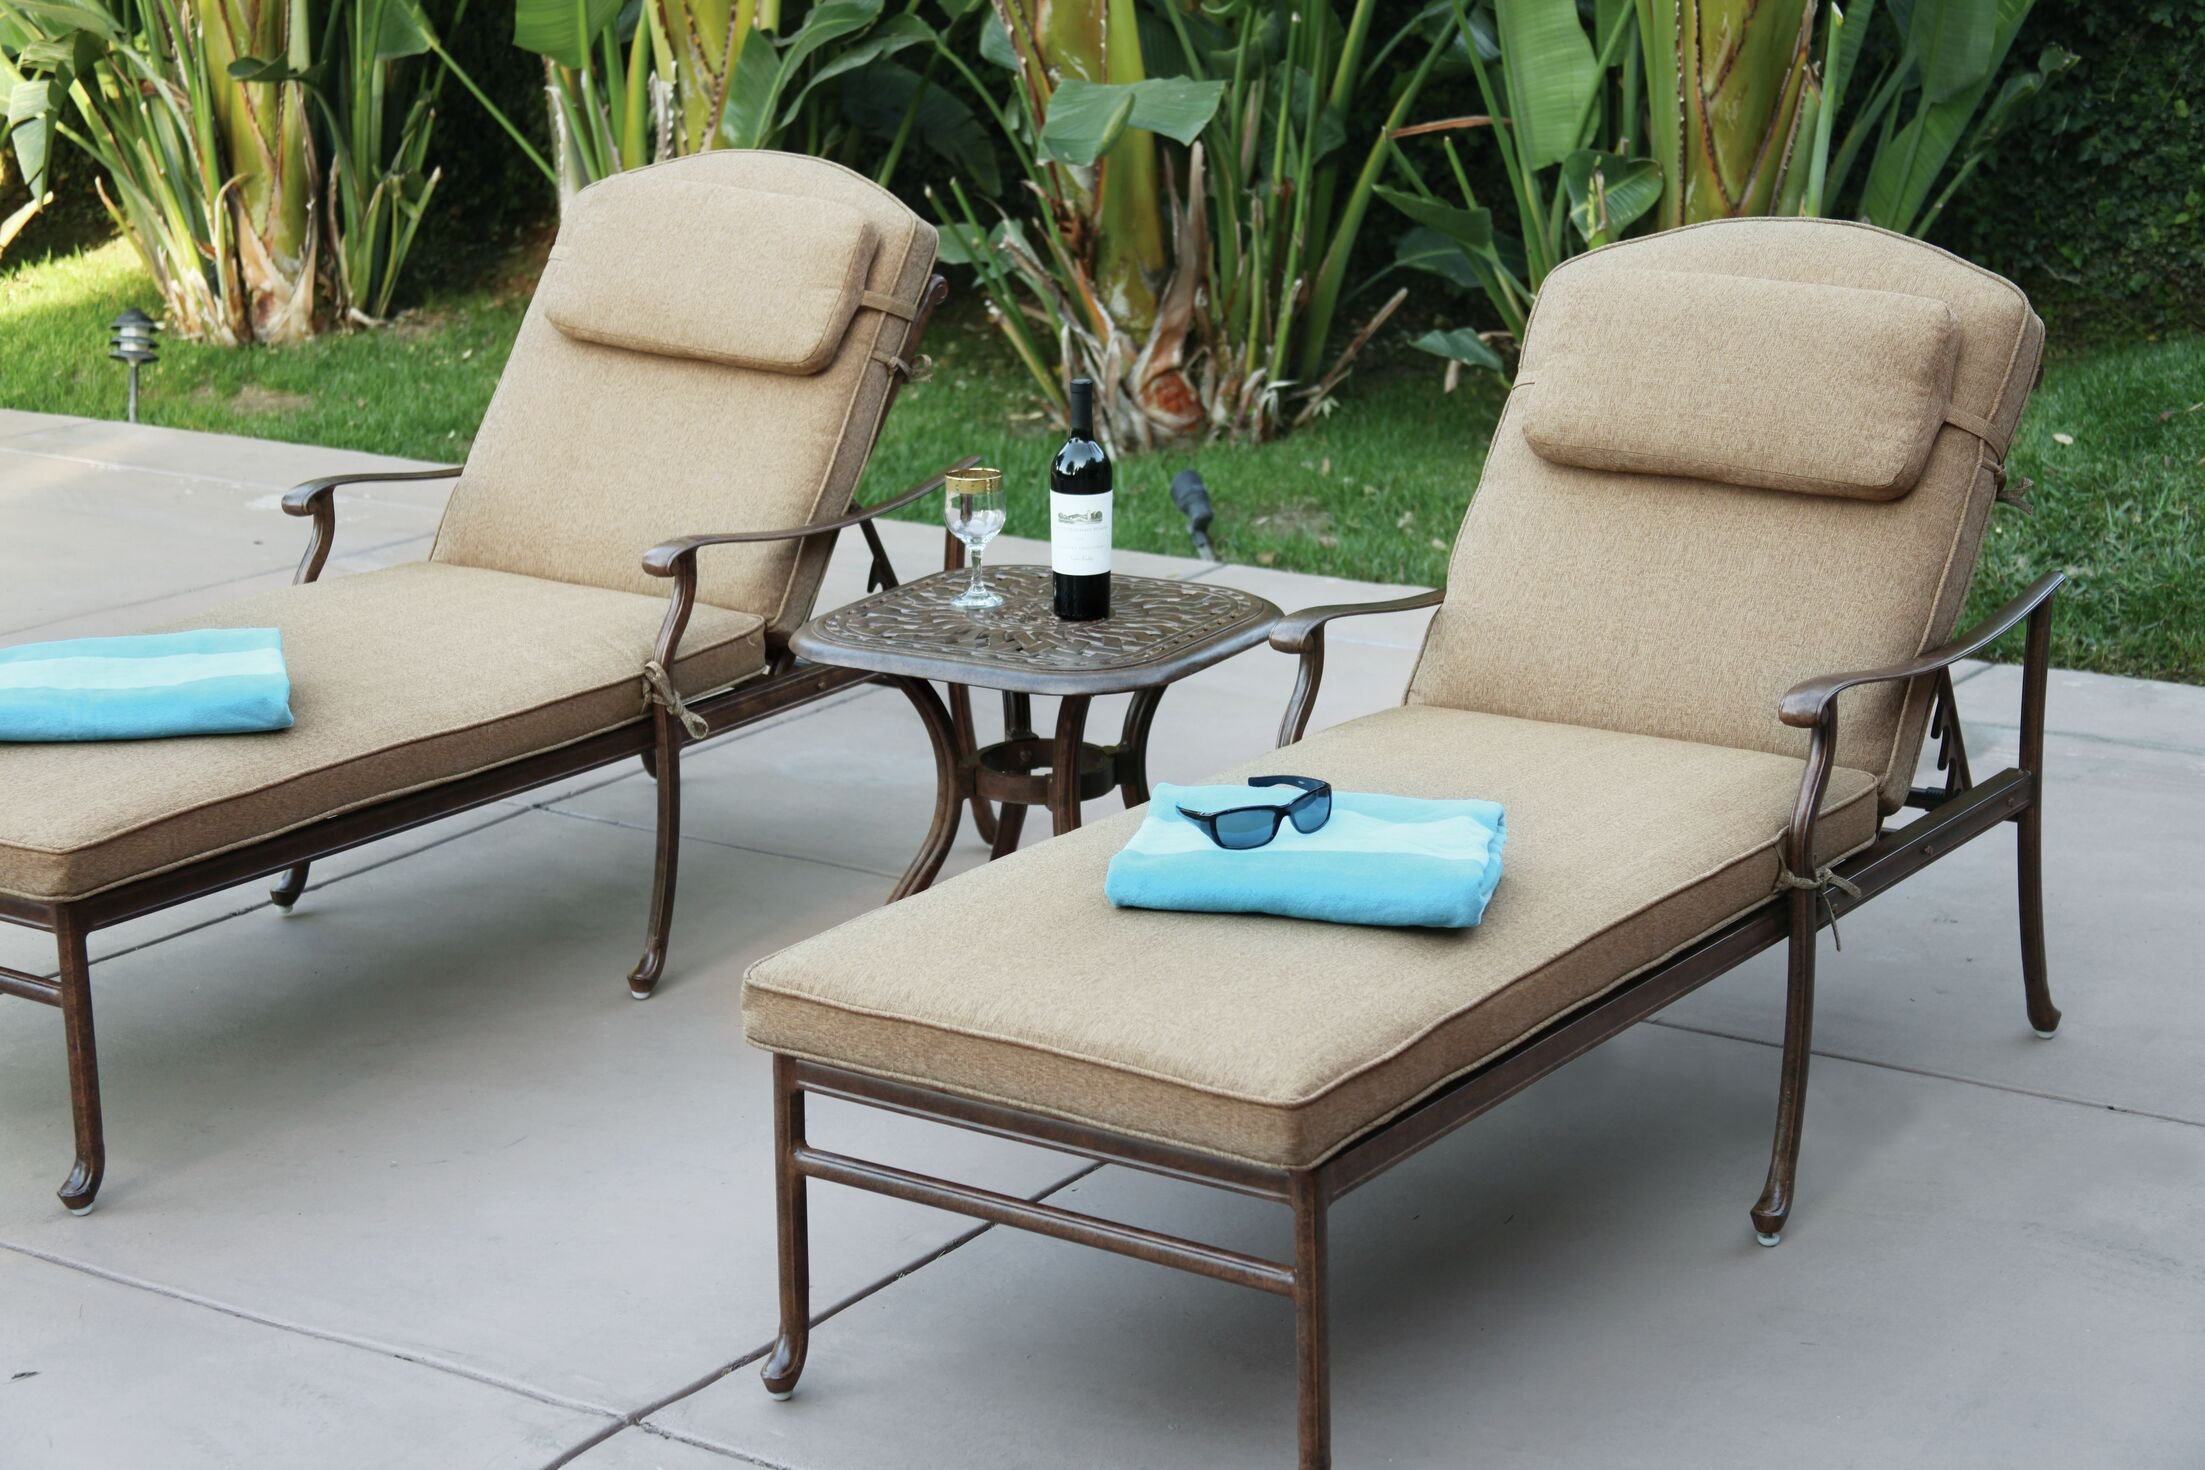 Thompson 3 Piece Chaise Lounge Set with Cushions Finish: Mocha